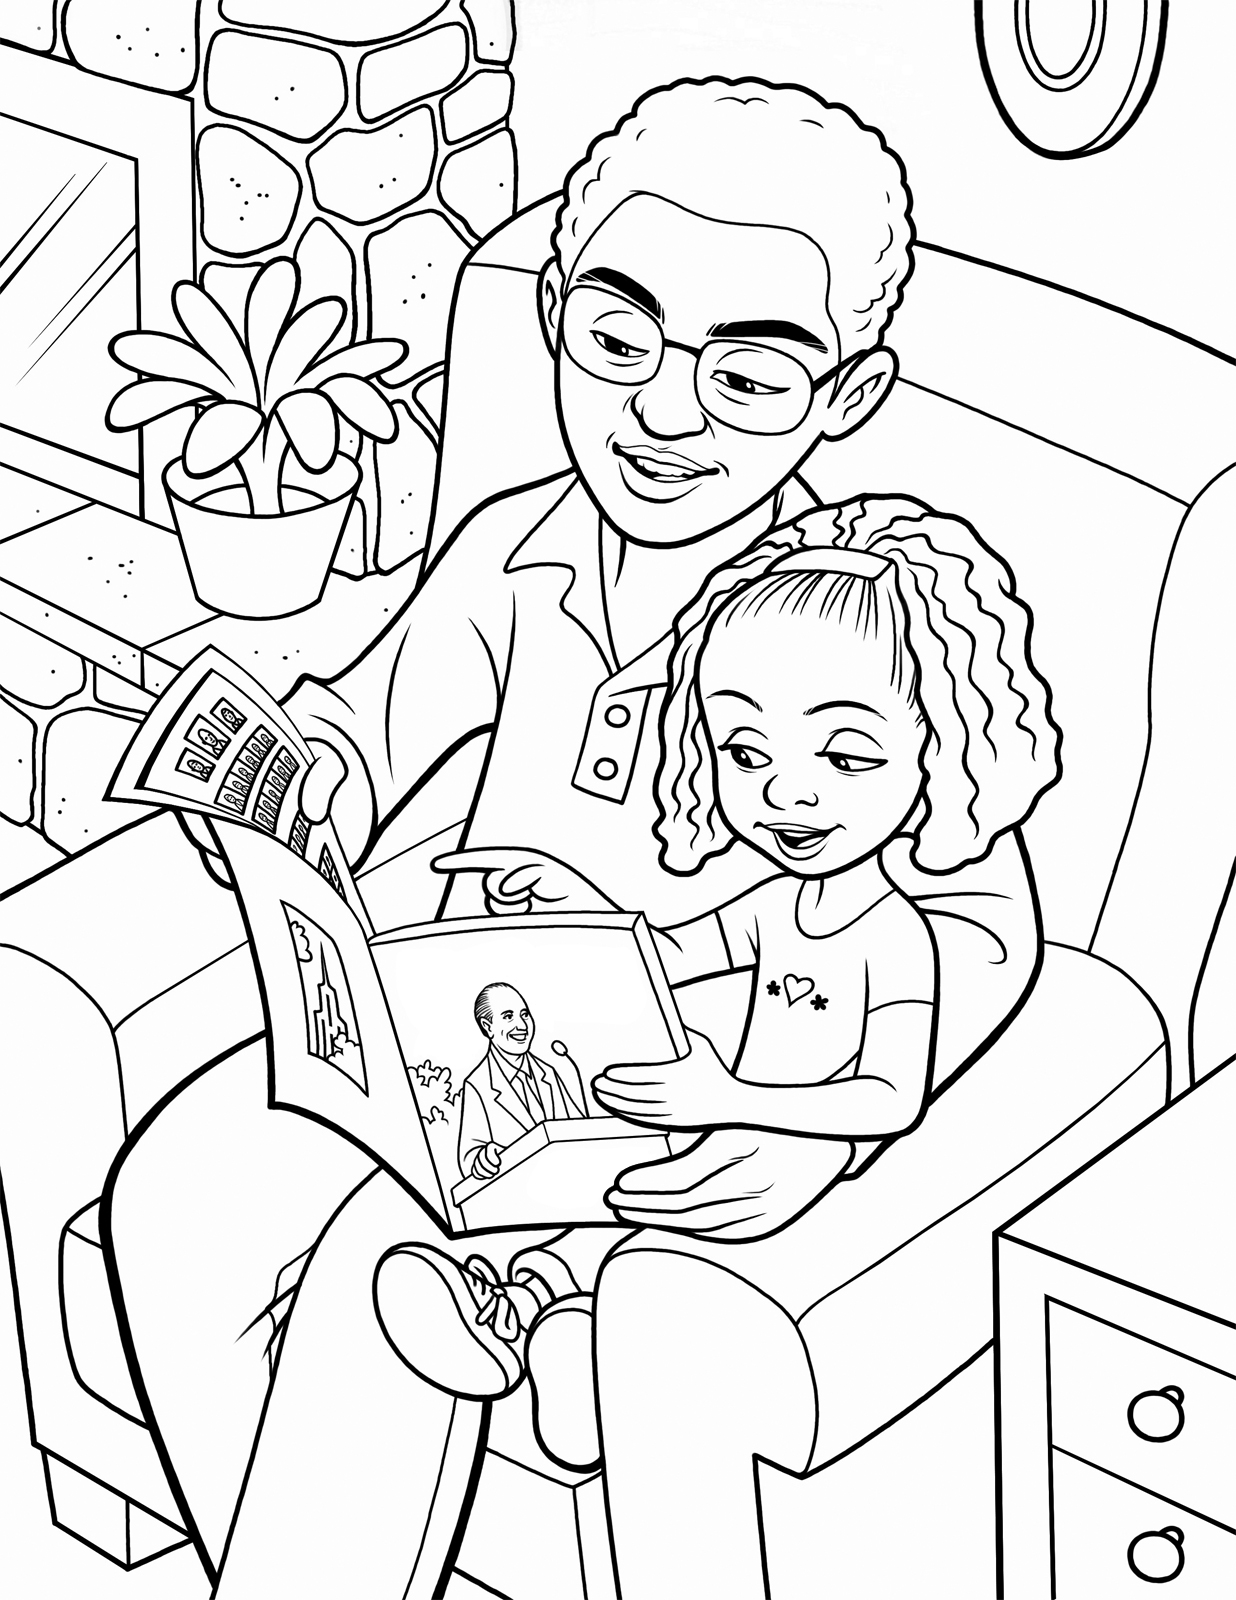 Uncategorized Lds.org Coloring Pages reading the general conference ensign issue share